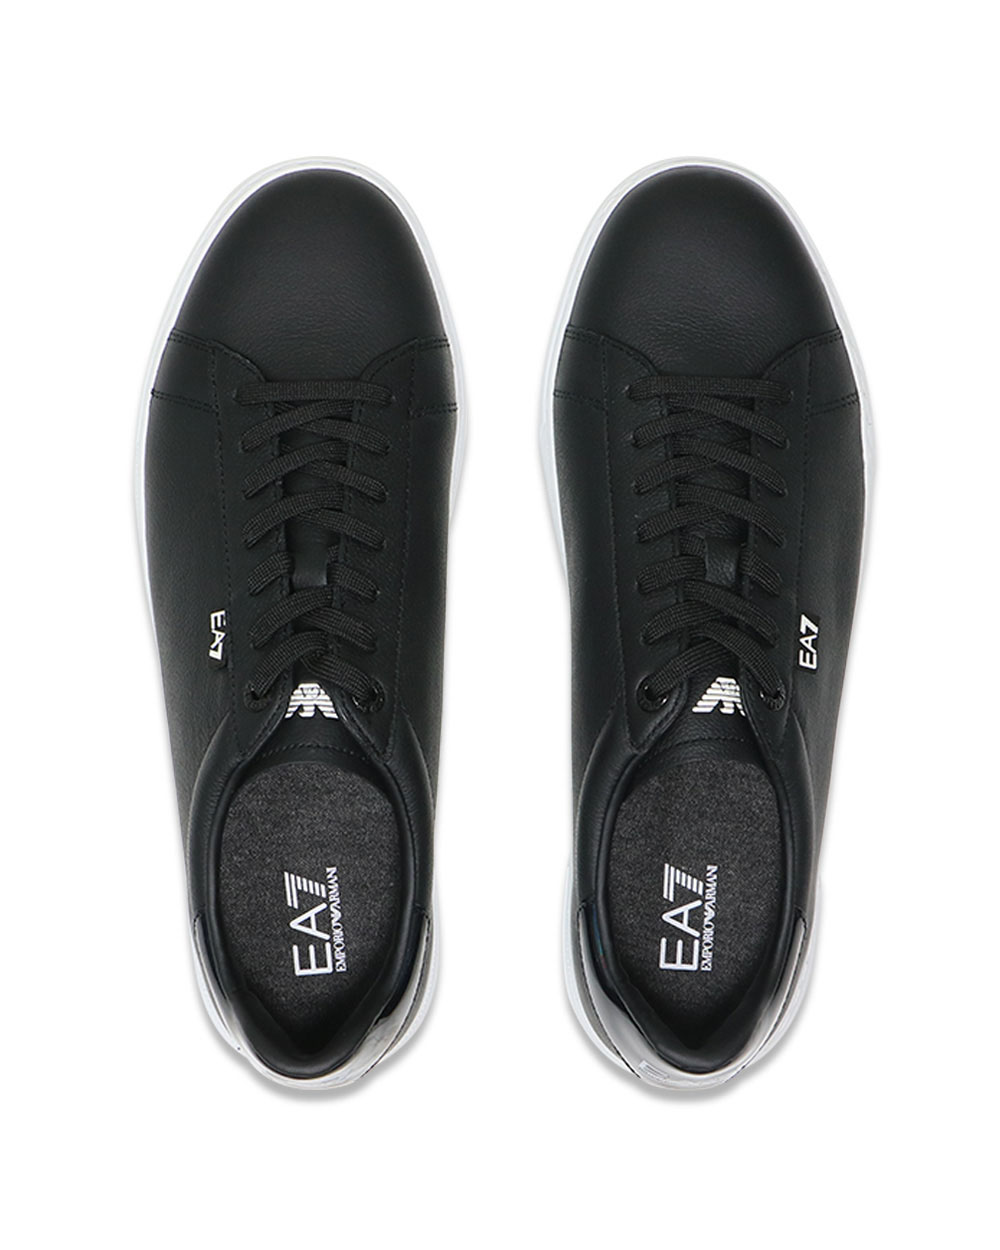 Classic Sole Sneakers 3